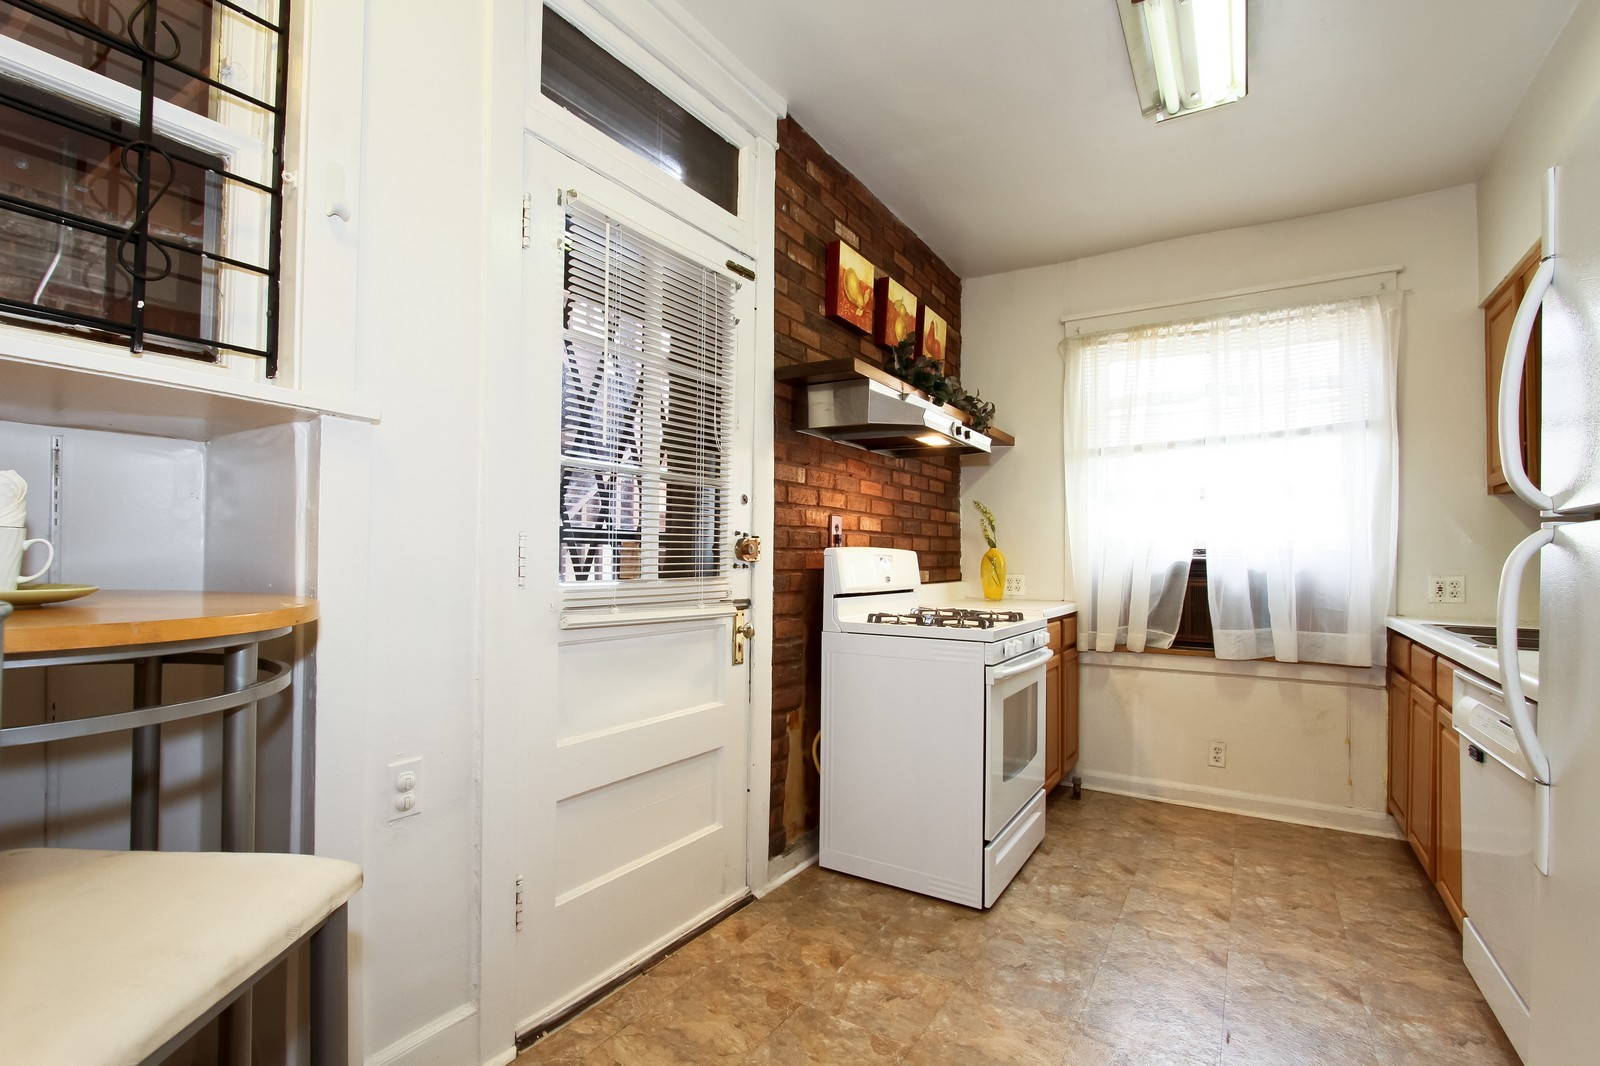 Real Estate Photography - 1648 E 54th St, Chicago, IL, 60615 - Kitchen